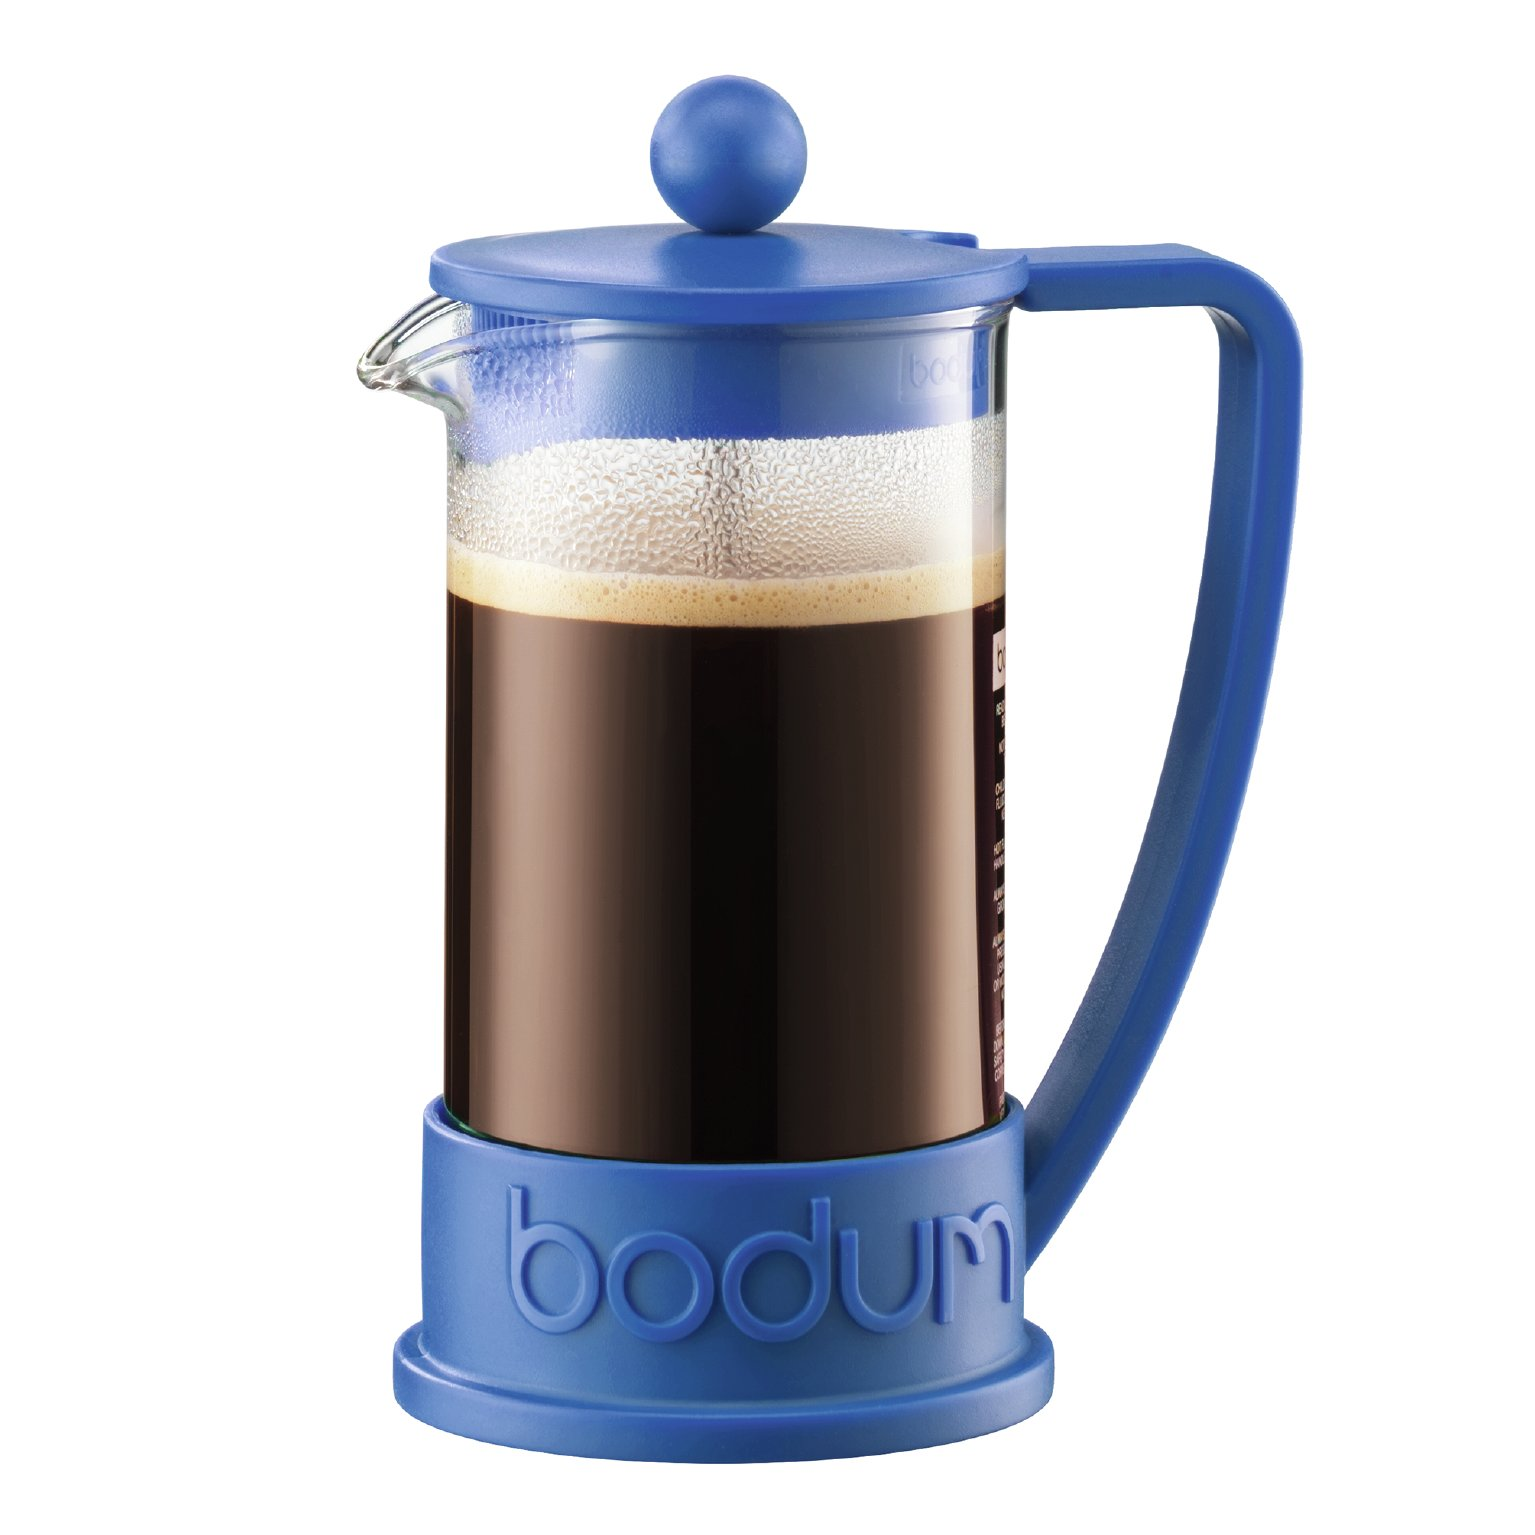 Bodum Coffee Press - Blue